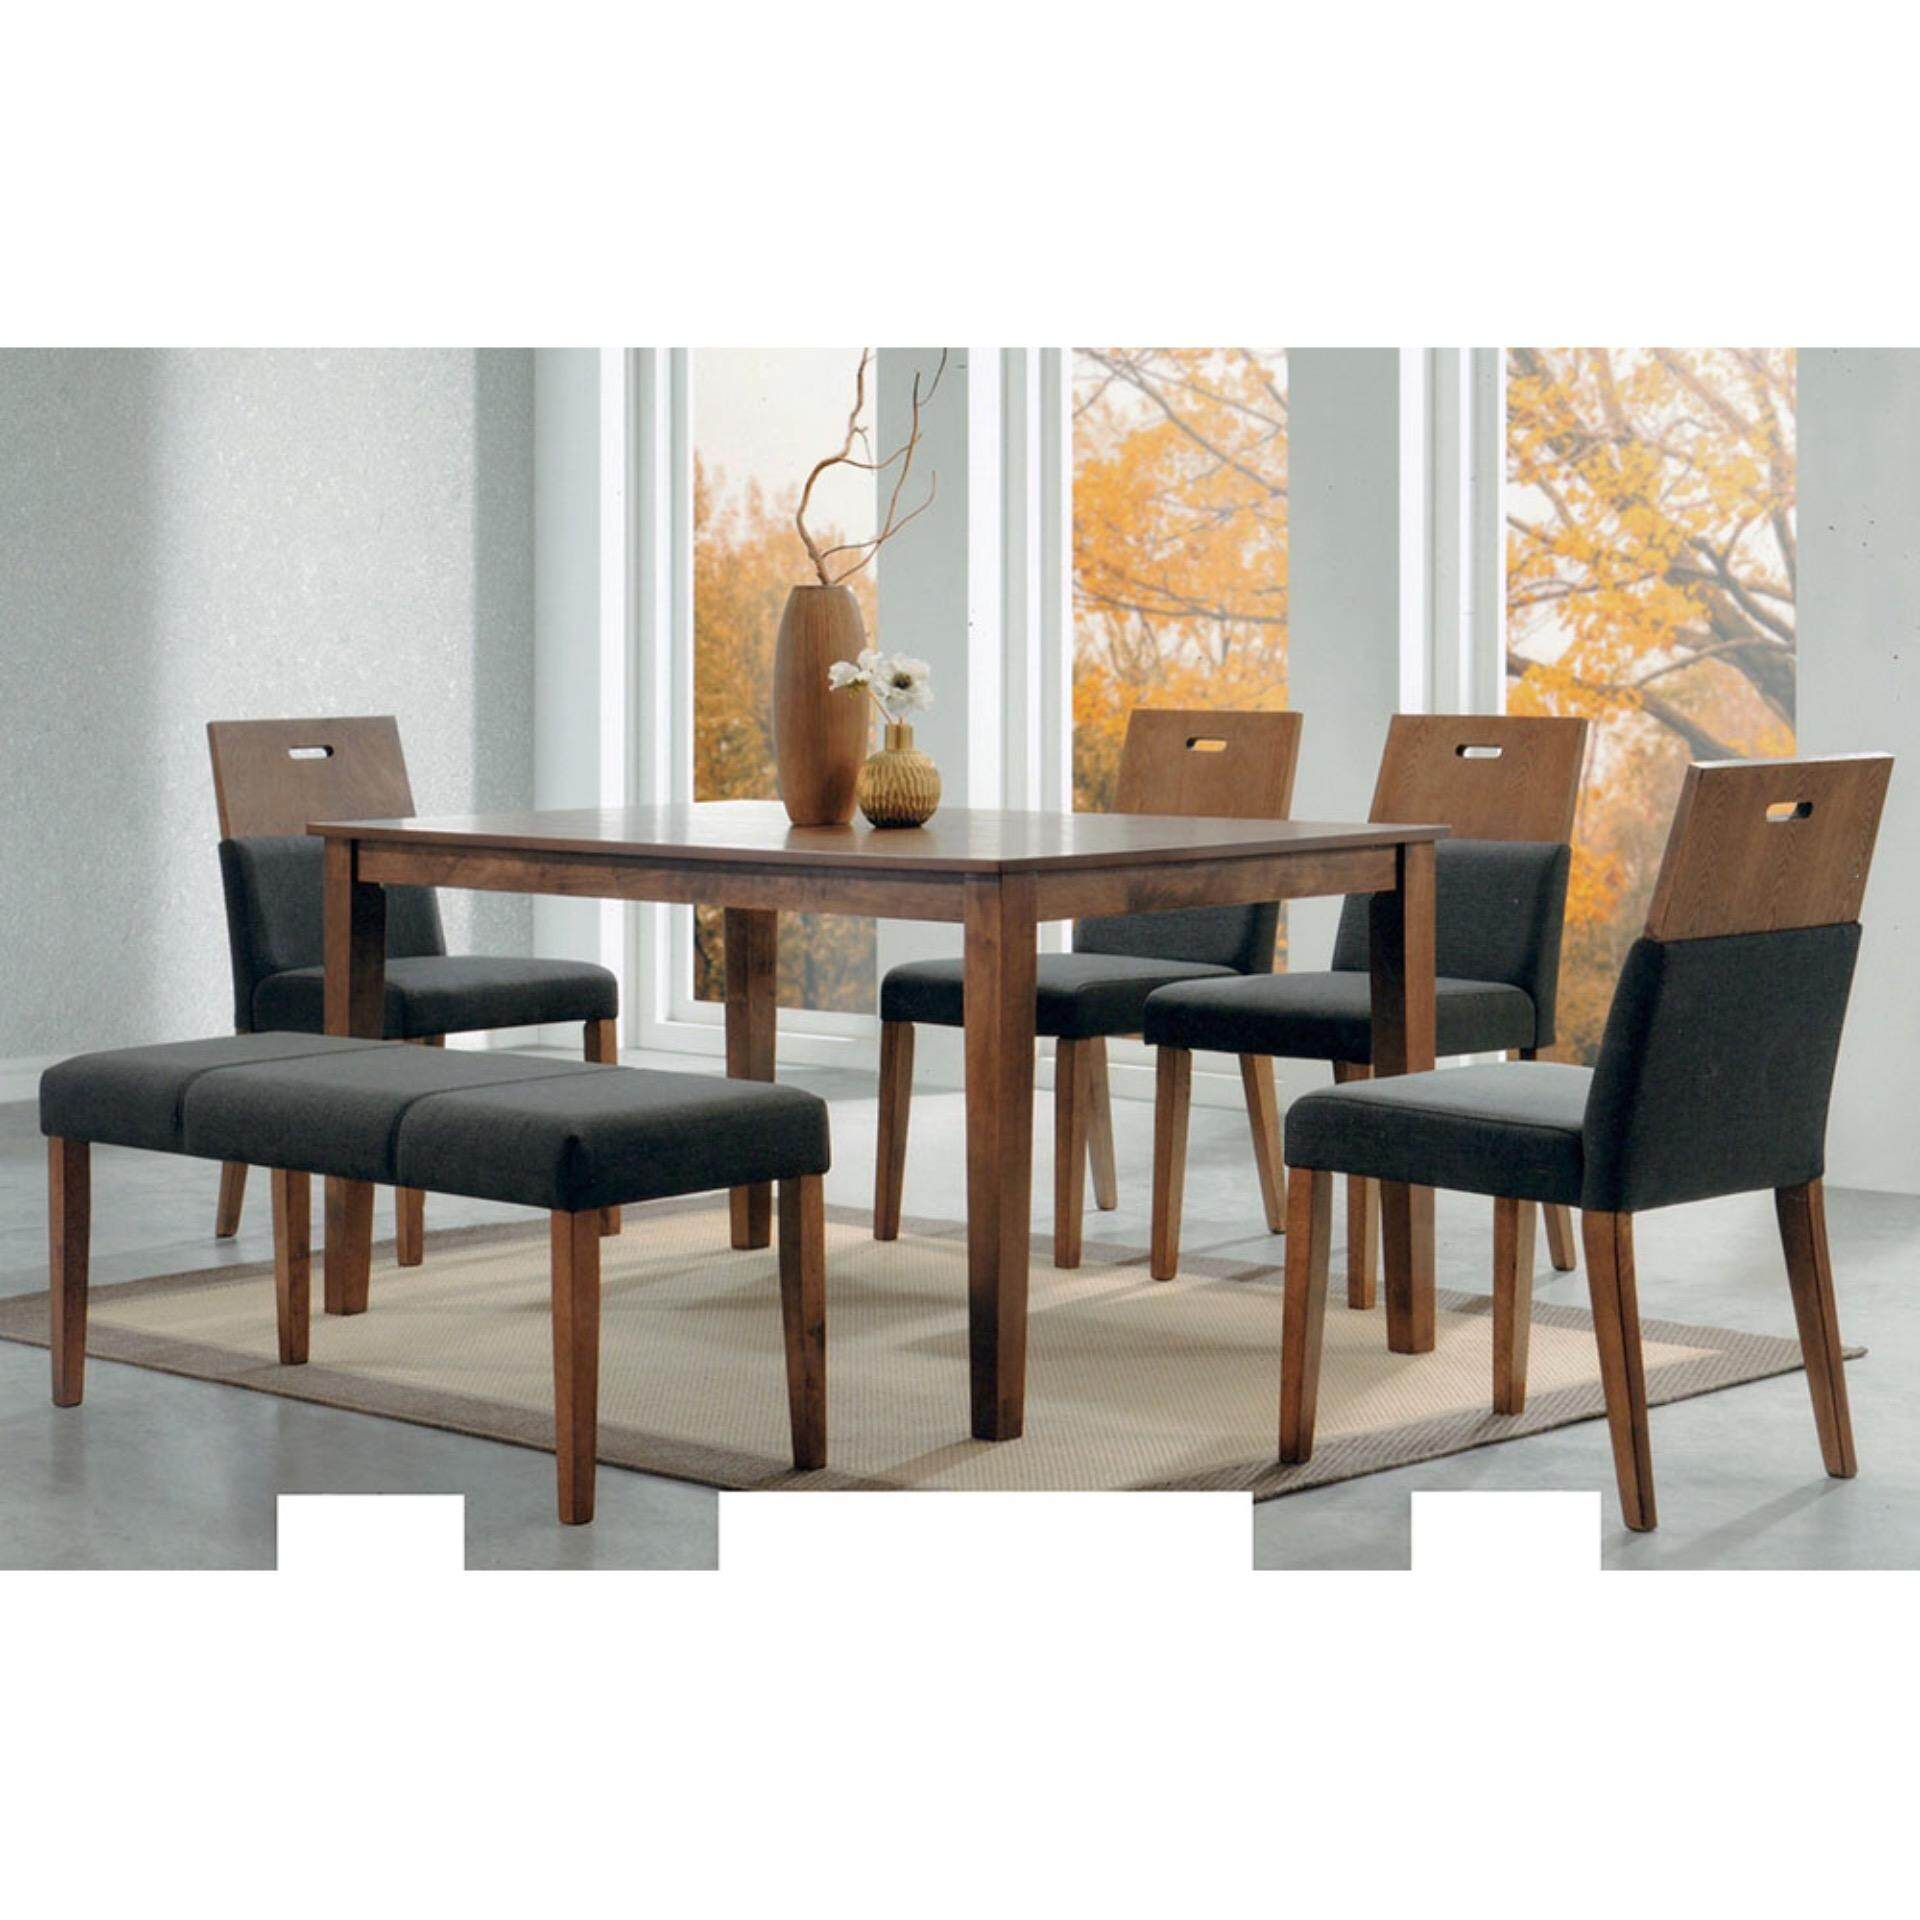 Solid Wood 1+5 Dining Table Cushion Chair Dining Set With Long Stool (Brown) L1800MM X W900MM X H750MM Pre Order 2 Week